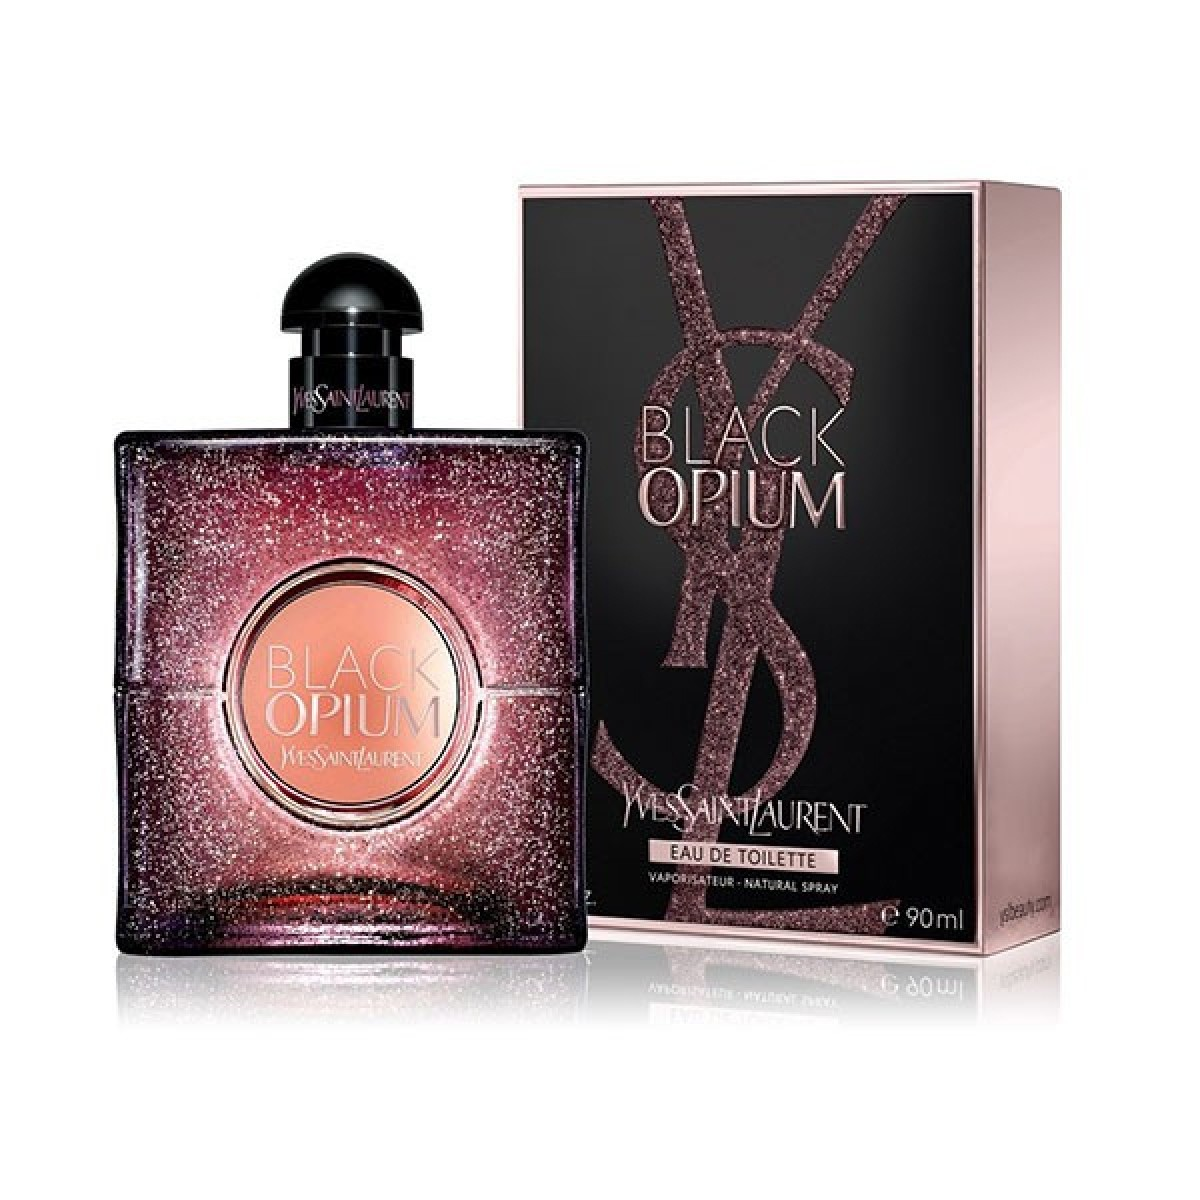 Туалетная вода Yves Saint Laurent Black Opium Eau De Toilette 90ml фото